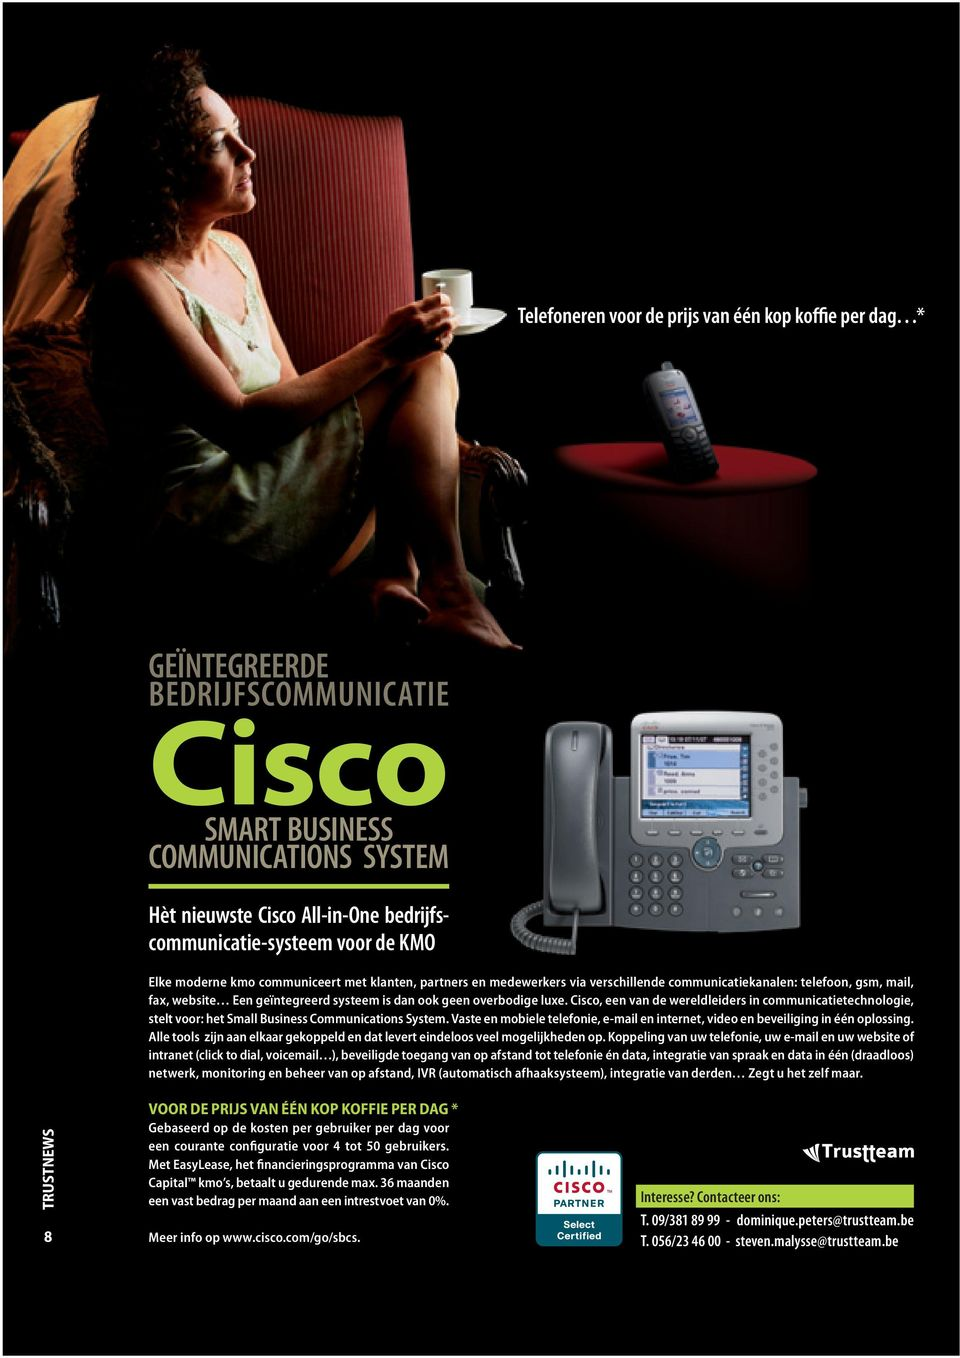 luxe. Cisco, een van de wereldleiders in communicatietechnologie, stelt voor: het Small Business Communications System.